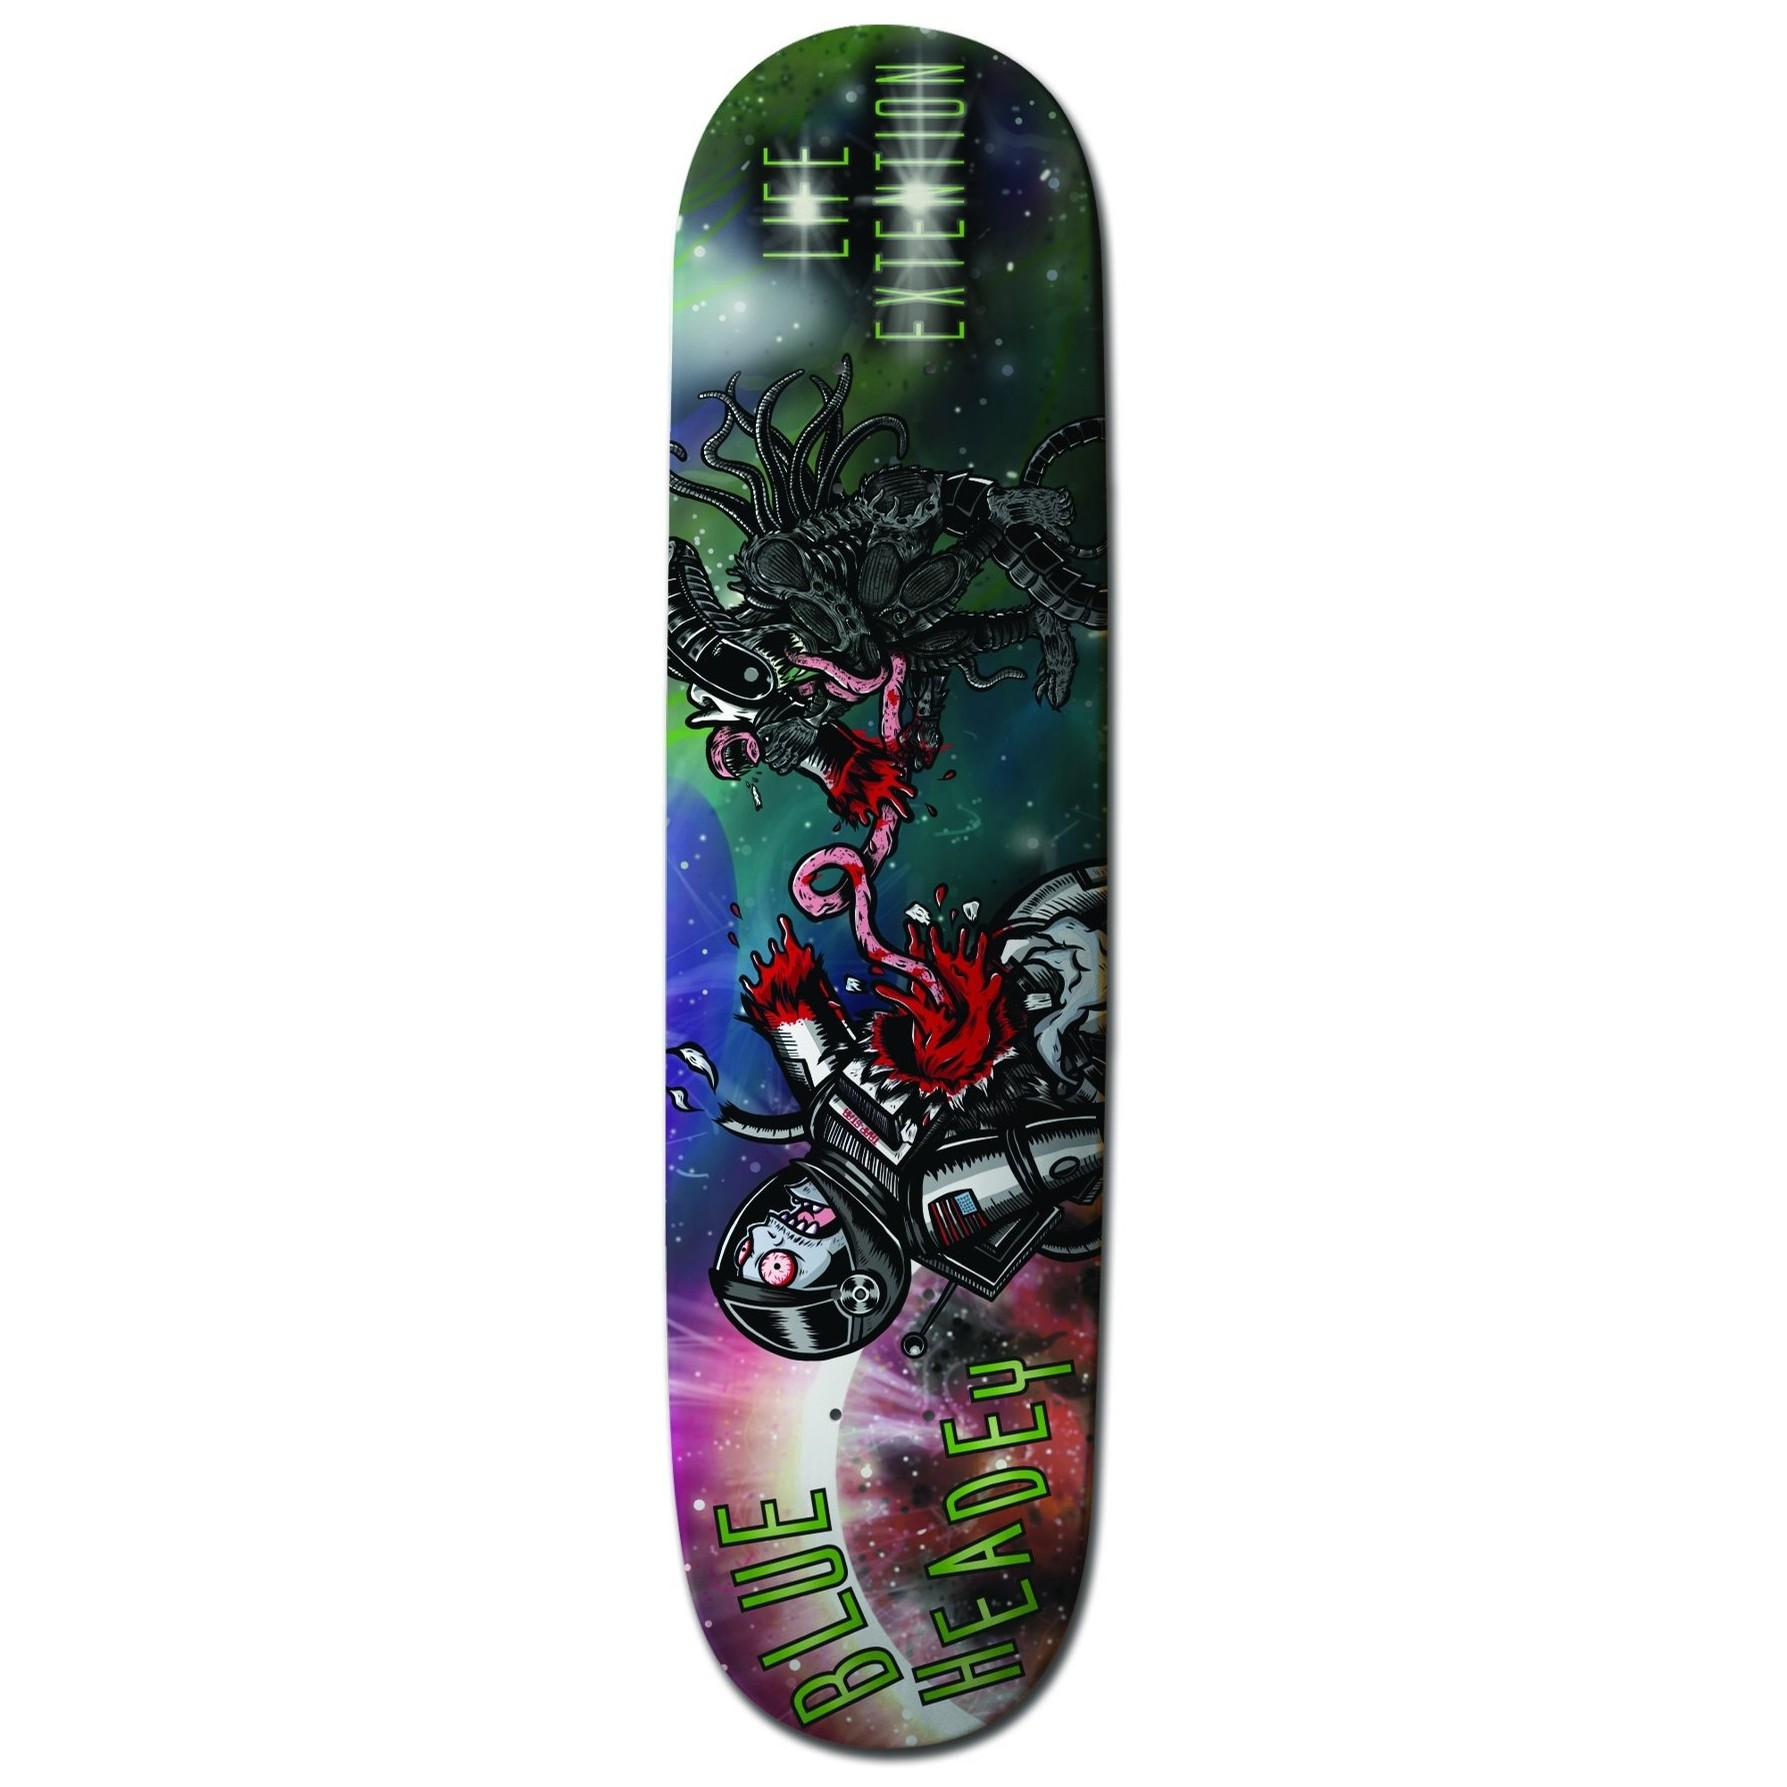 Headey Alien Deck (8.25)